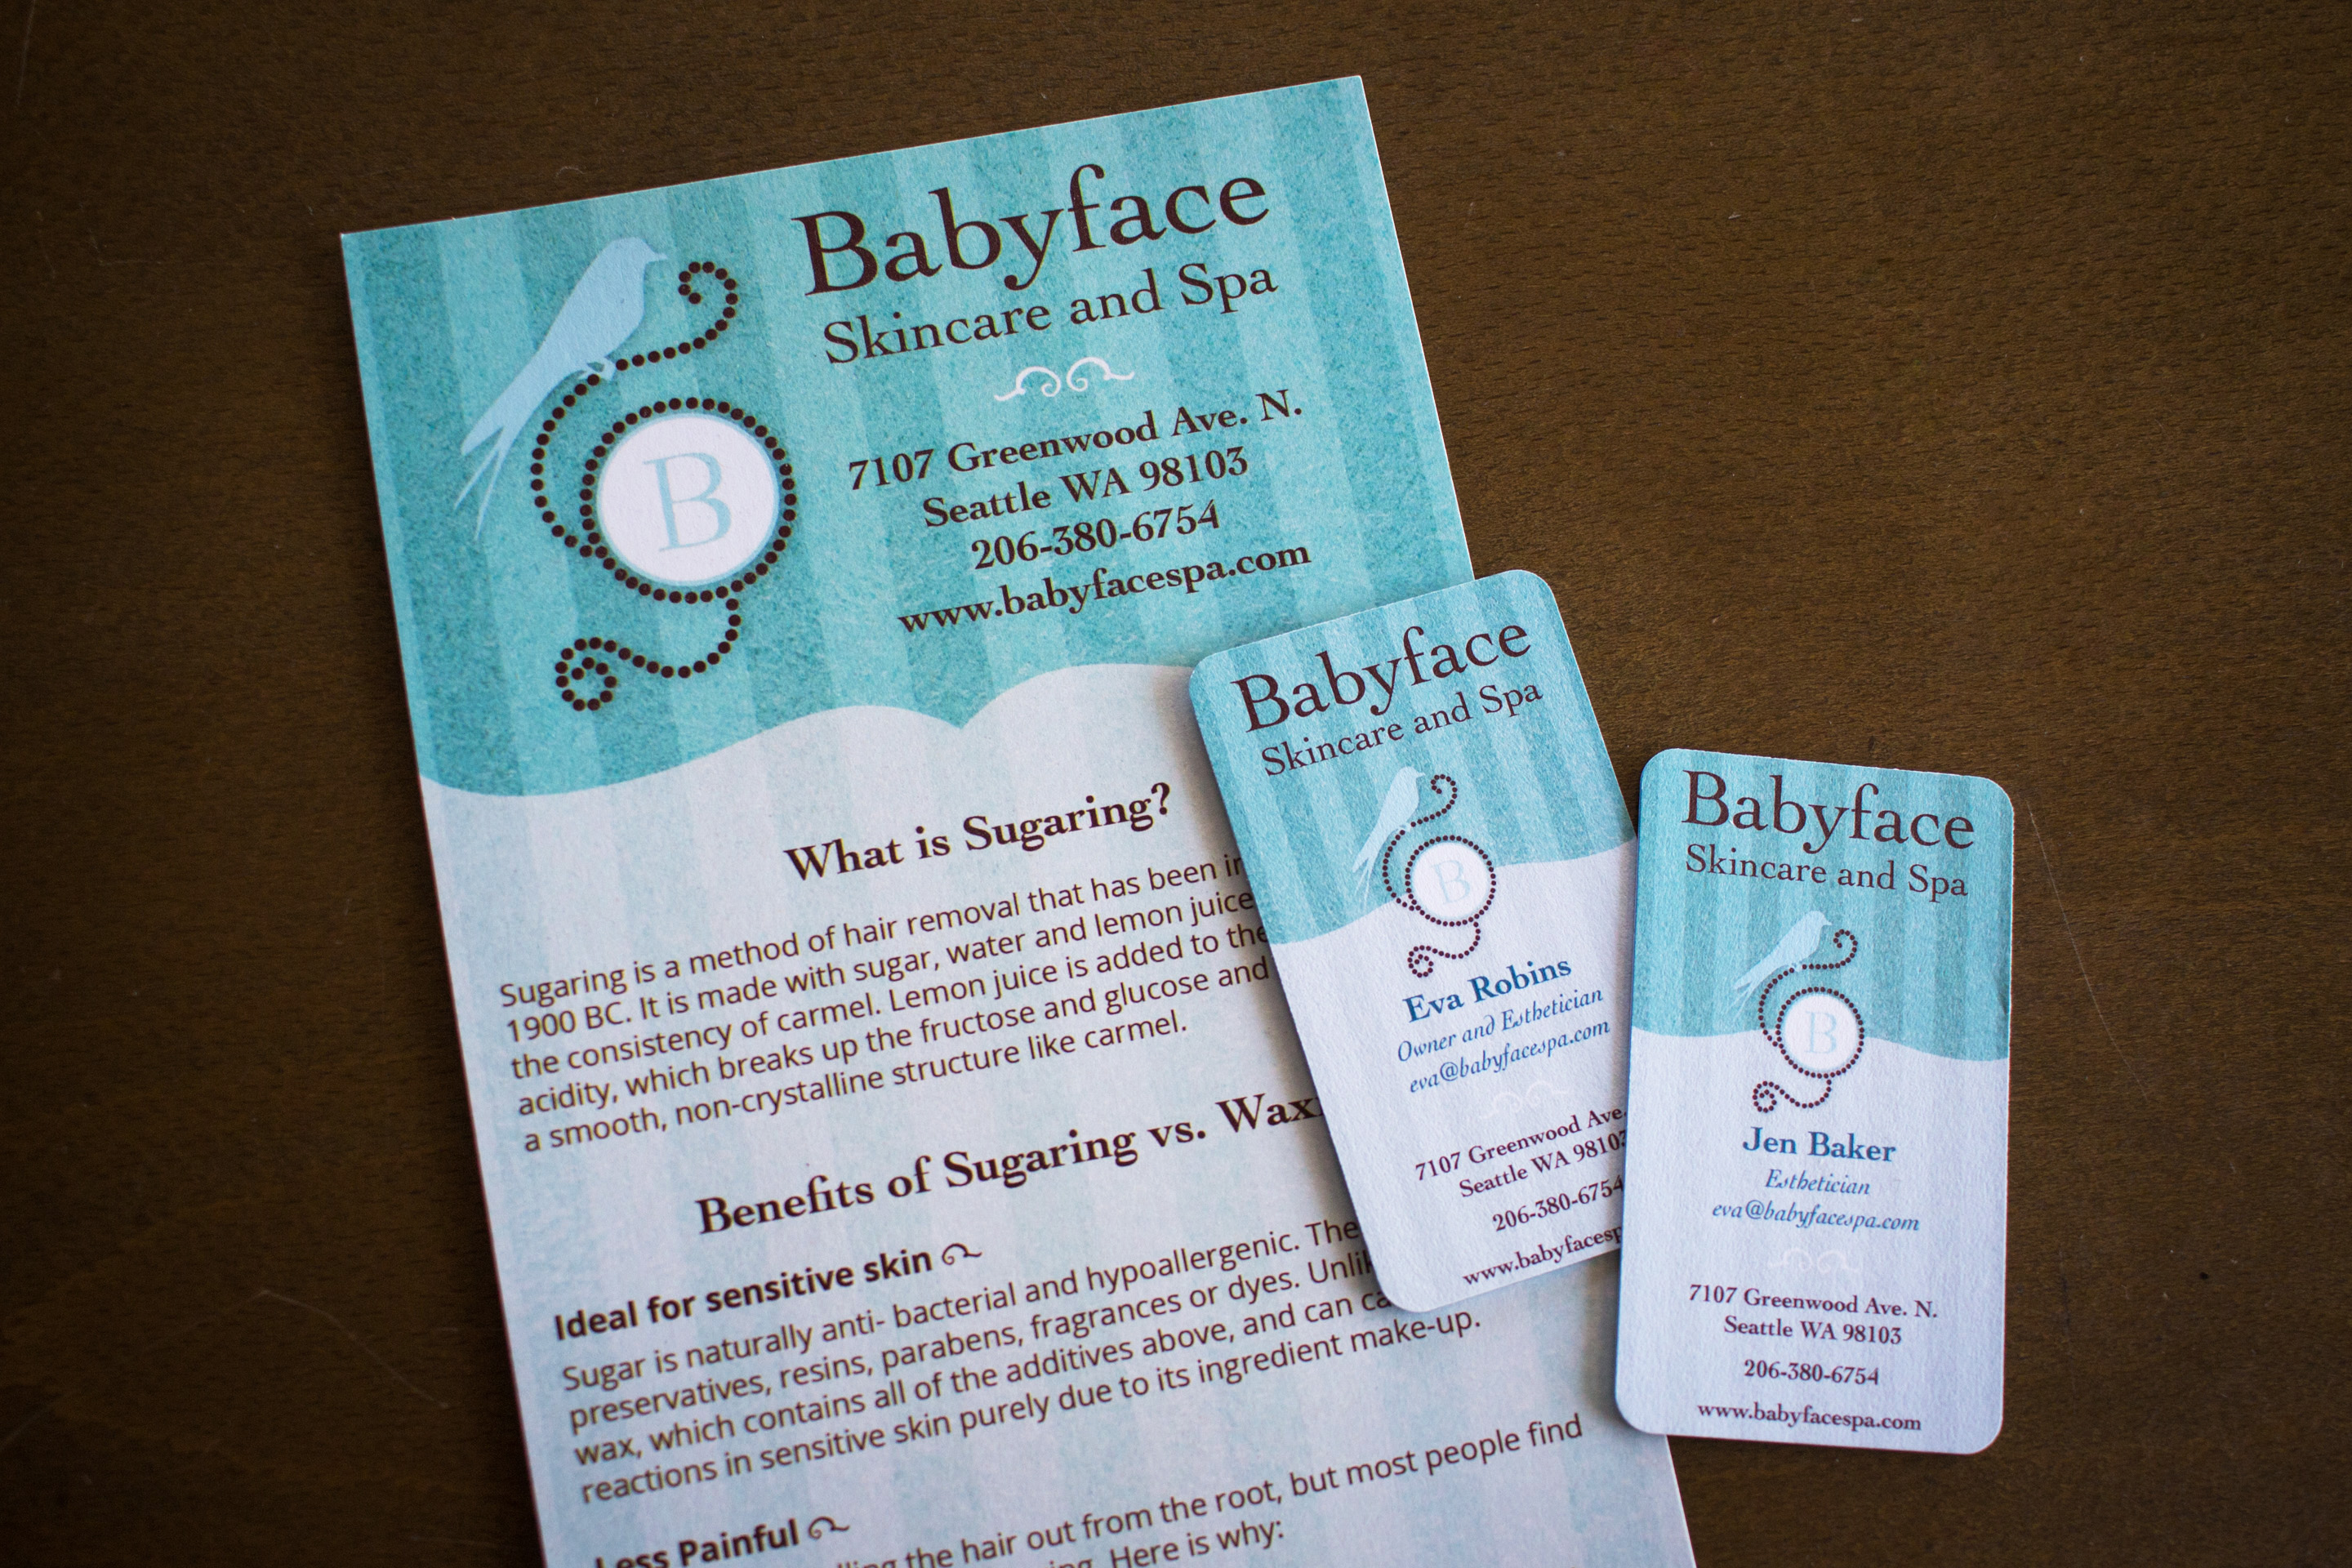 Babyface Skincare Menu and Business Cards